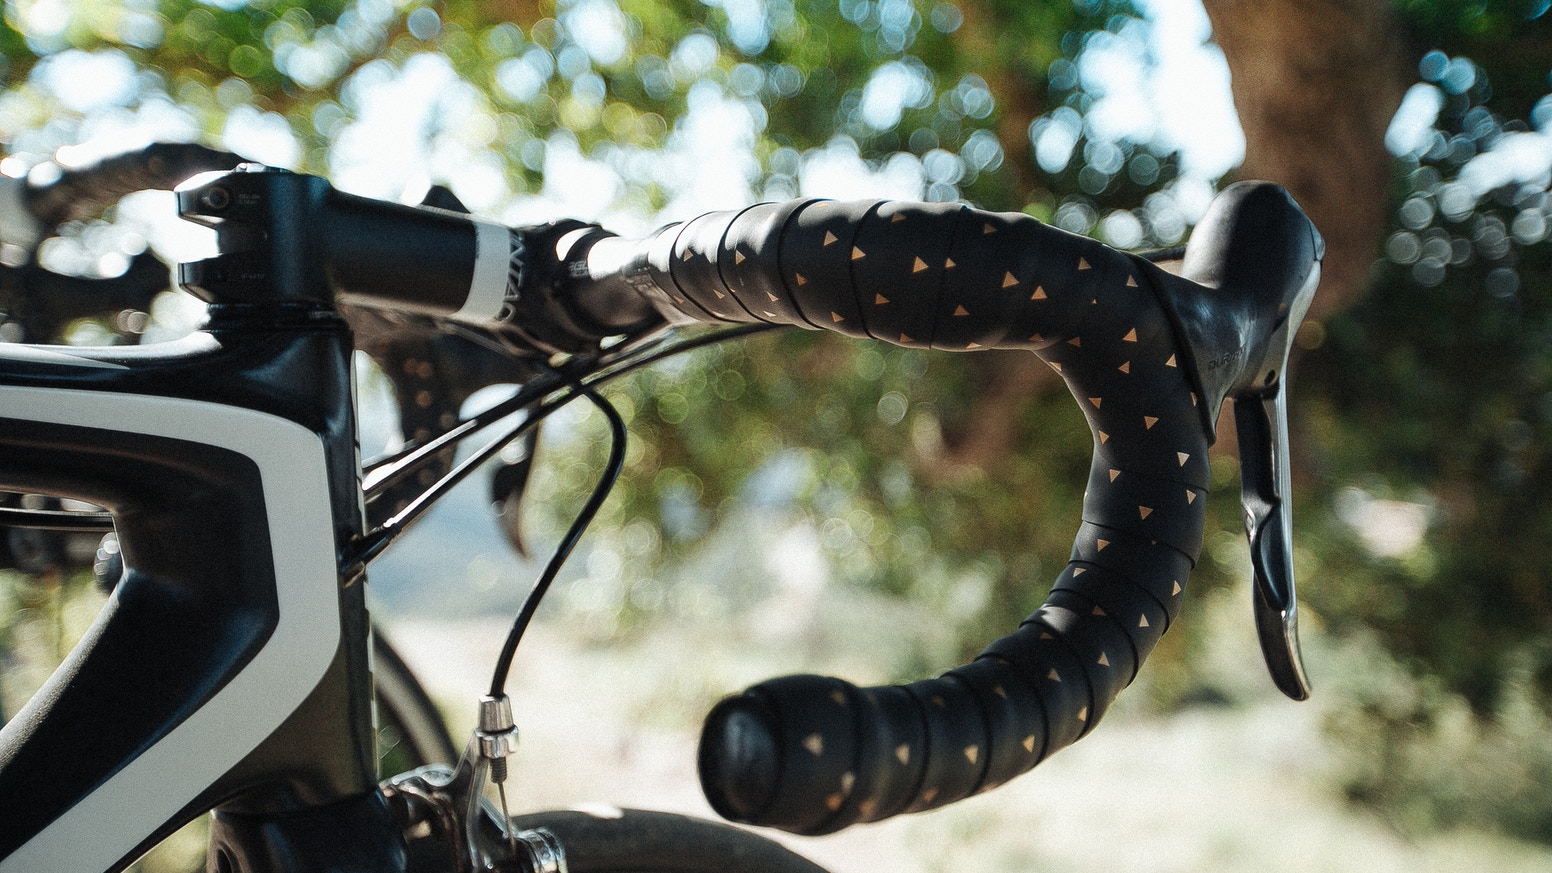 Unique and distinctive handlebar tape for bicycles, whether fixie, road or triathlon bike.